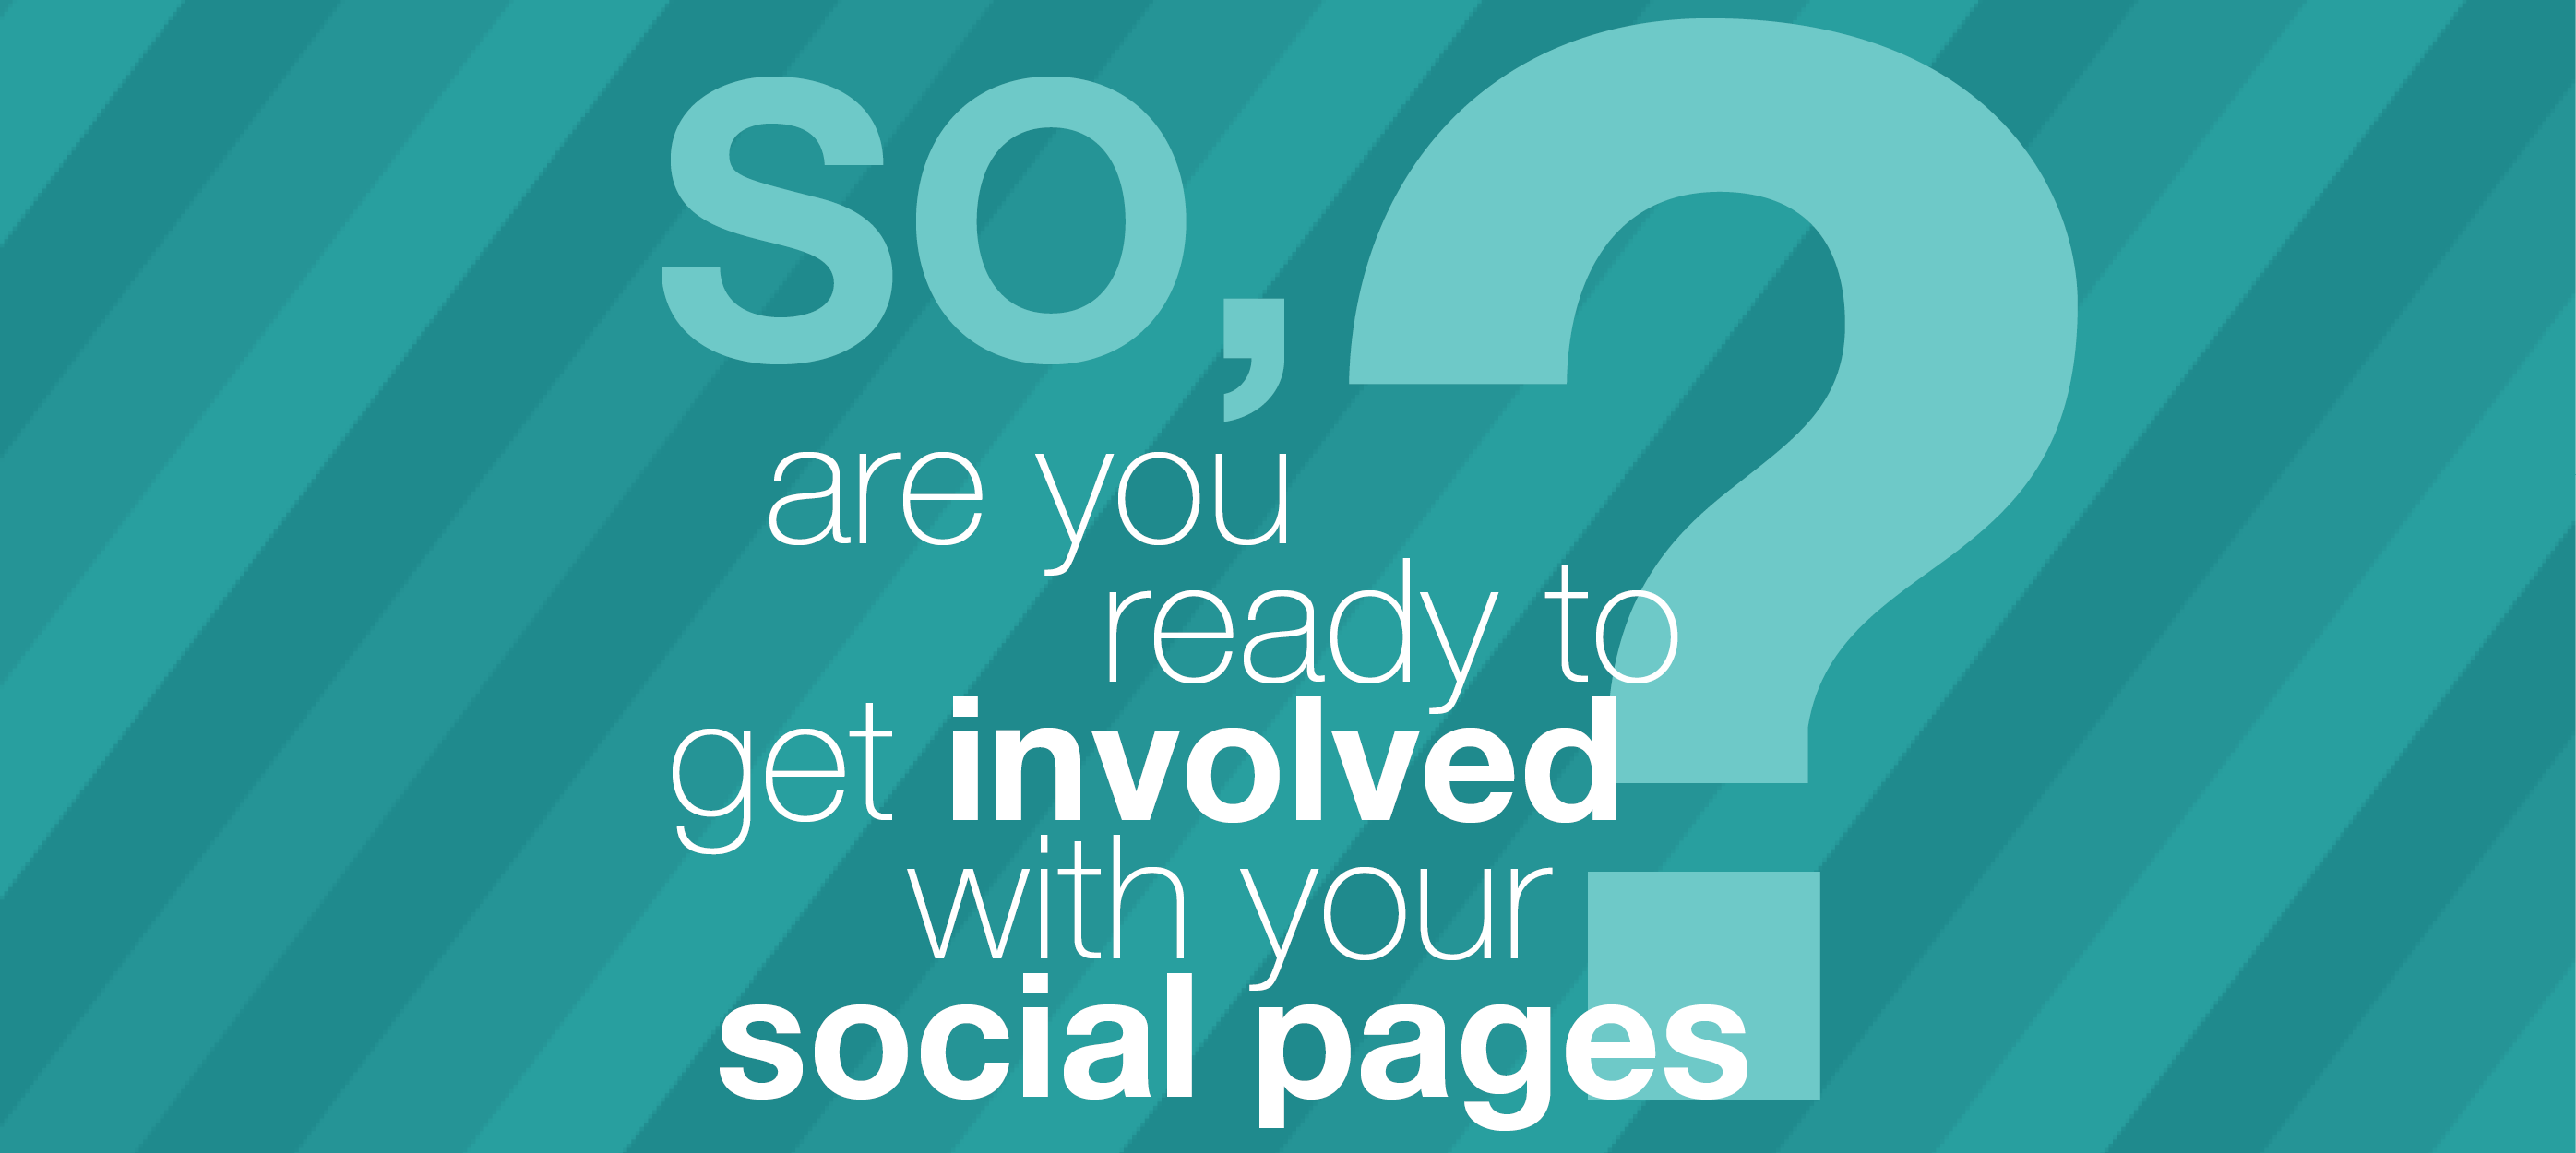 so are you ready to get involved with your social pages?